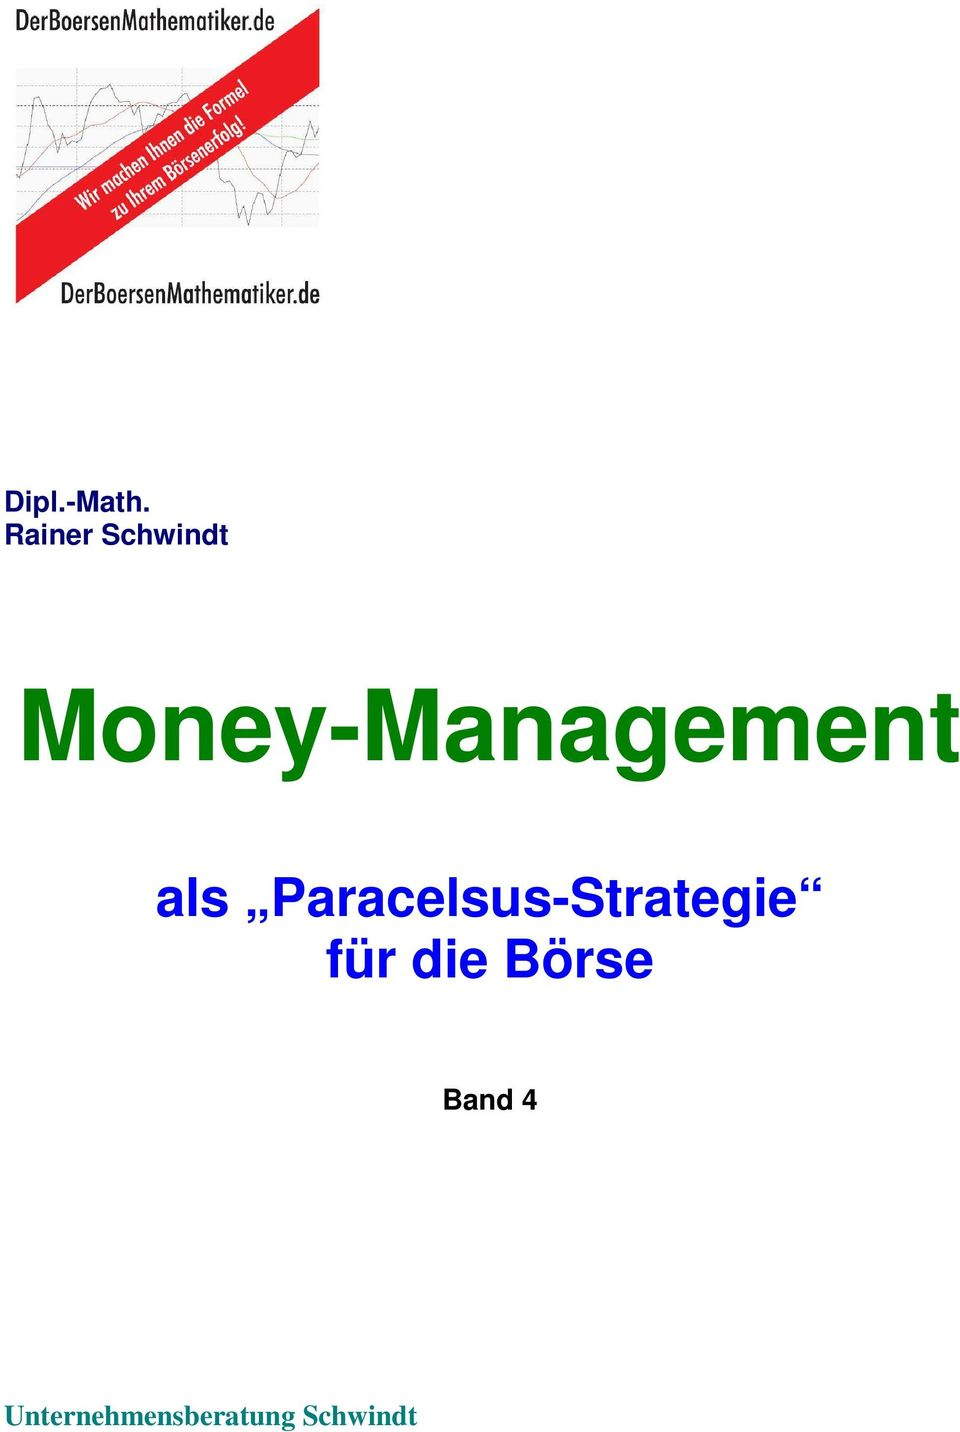 Money-Management als